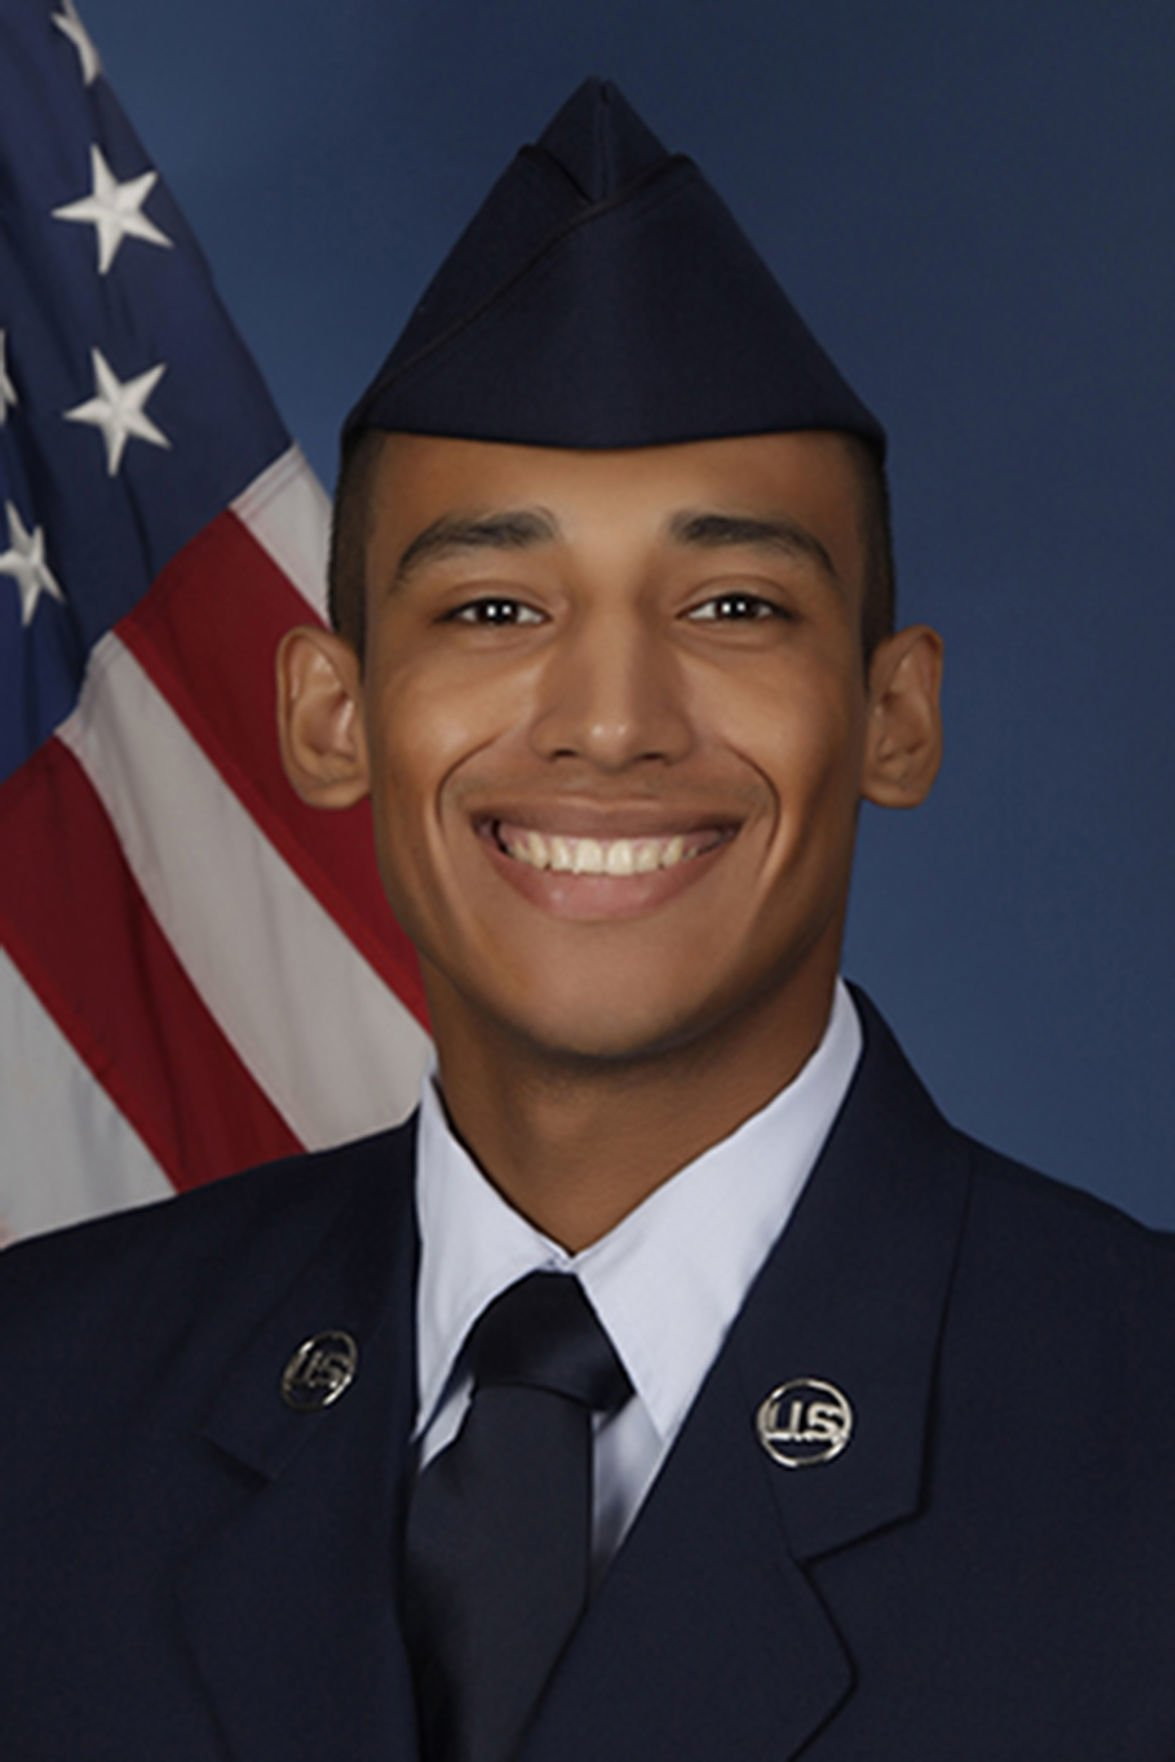 Air Force: Robert A. Murrieta